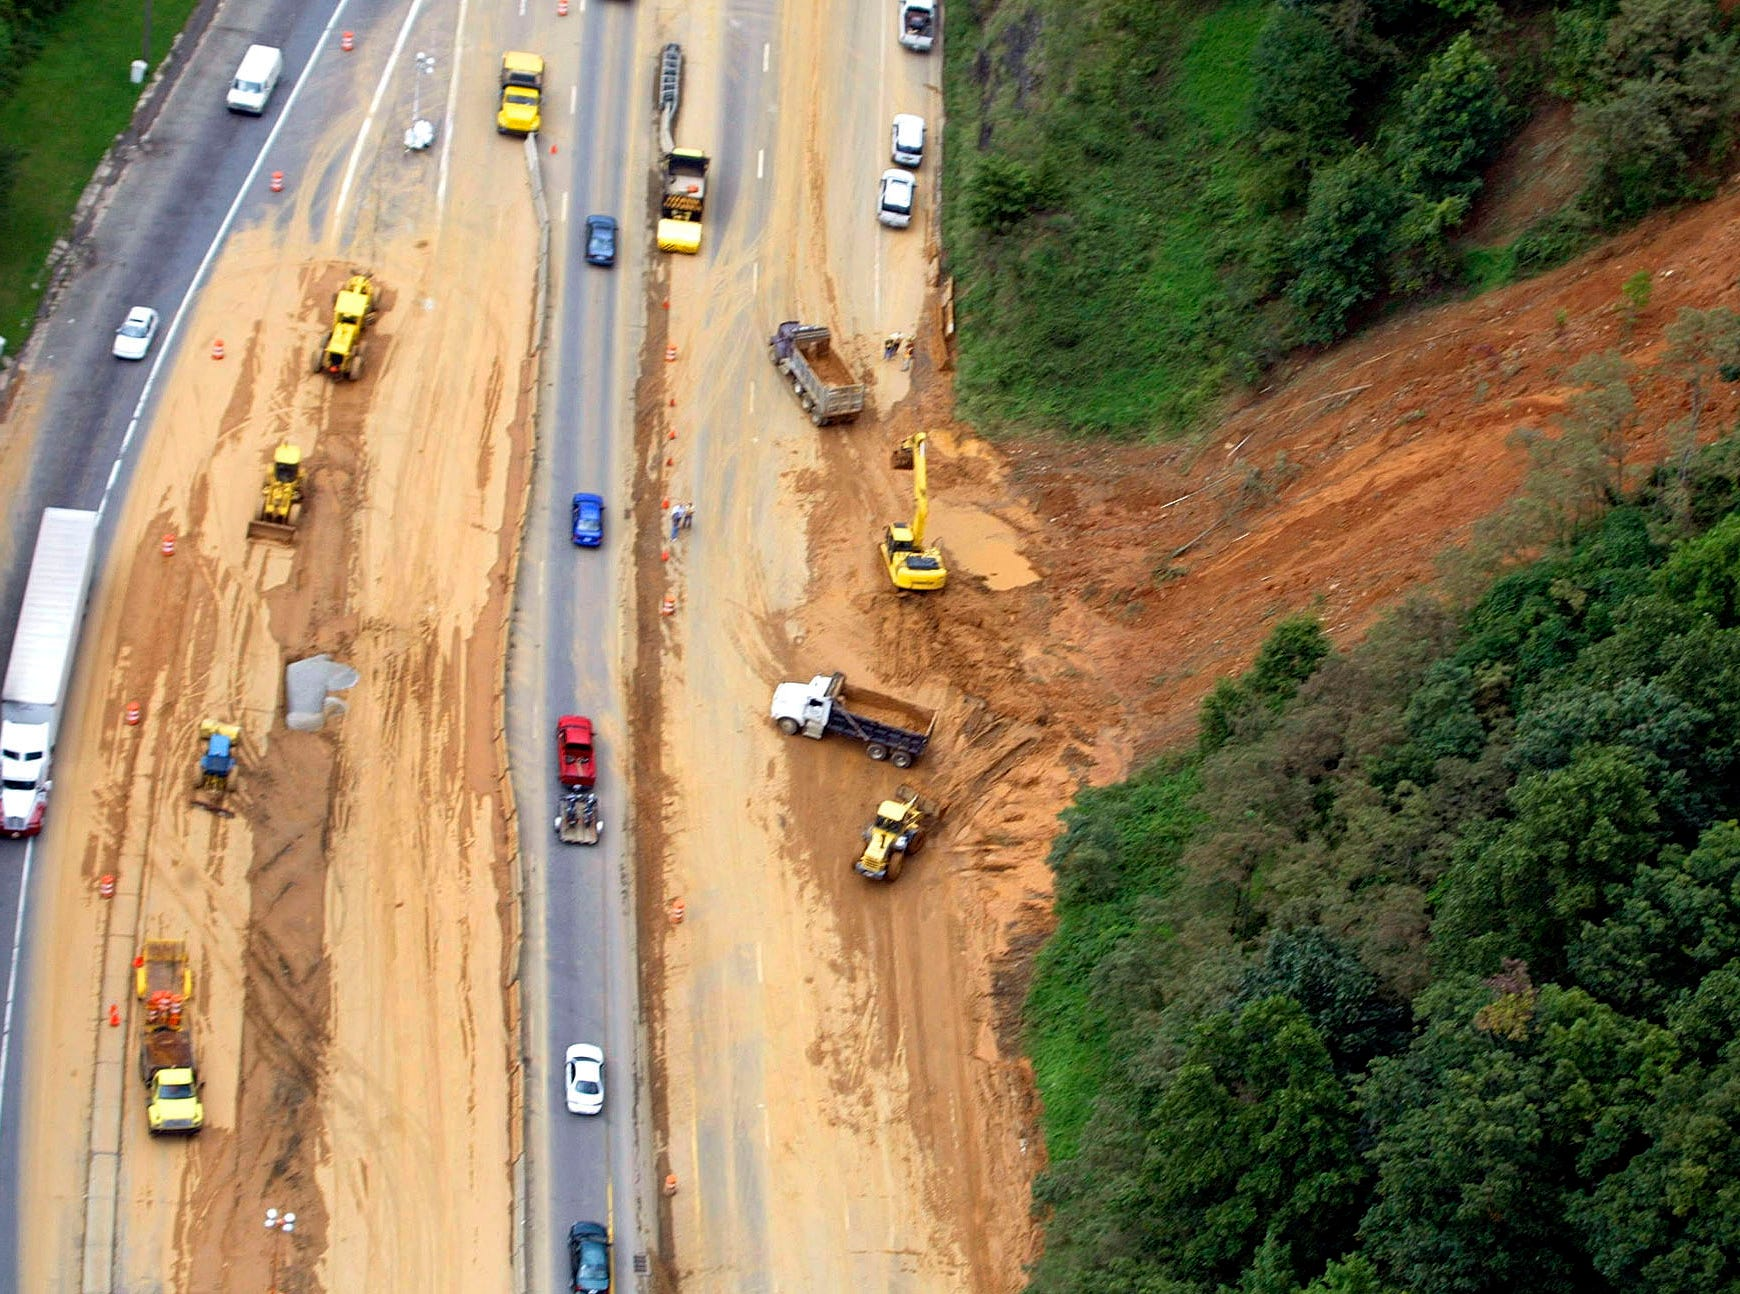 Workers try to clear a mud slide on Interstate 40 outside of Black Mountain on Sept. 9, 2004, after the remnants of Hurricane Frances brought heavy rains and flooding to the area.